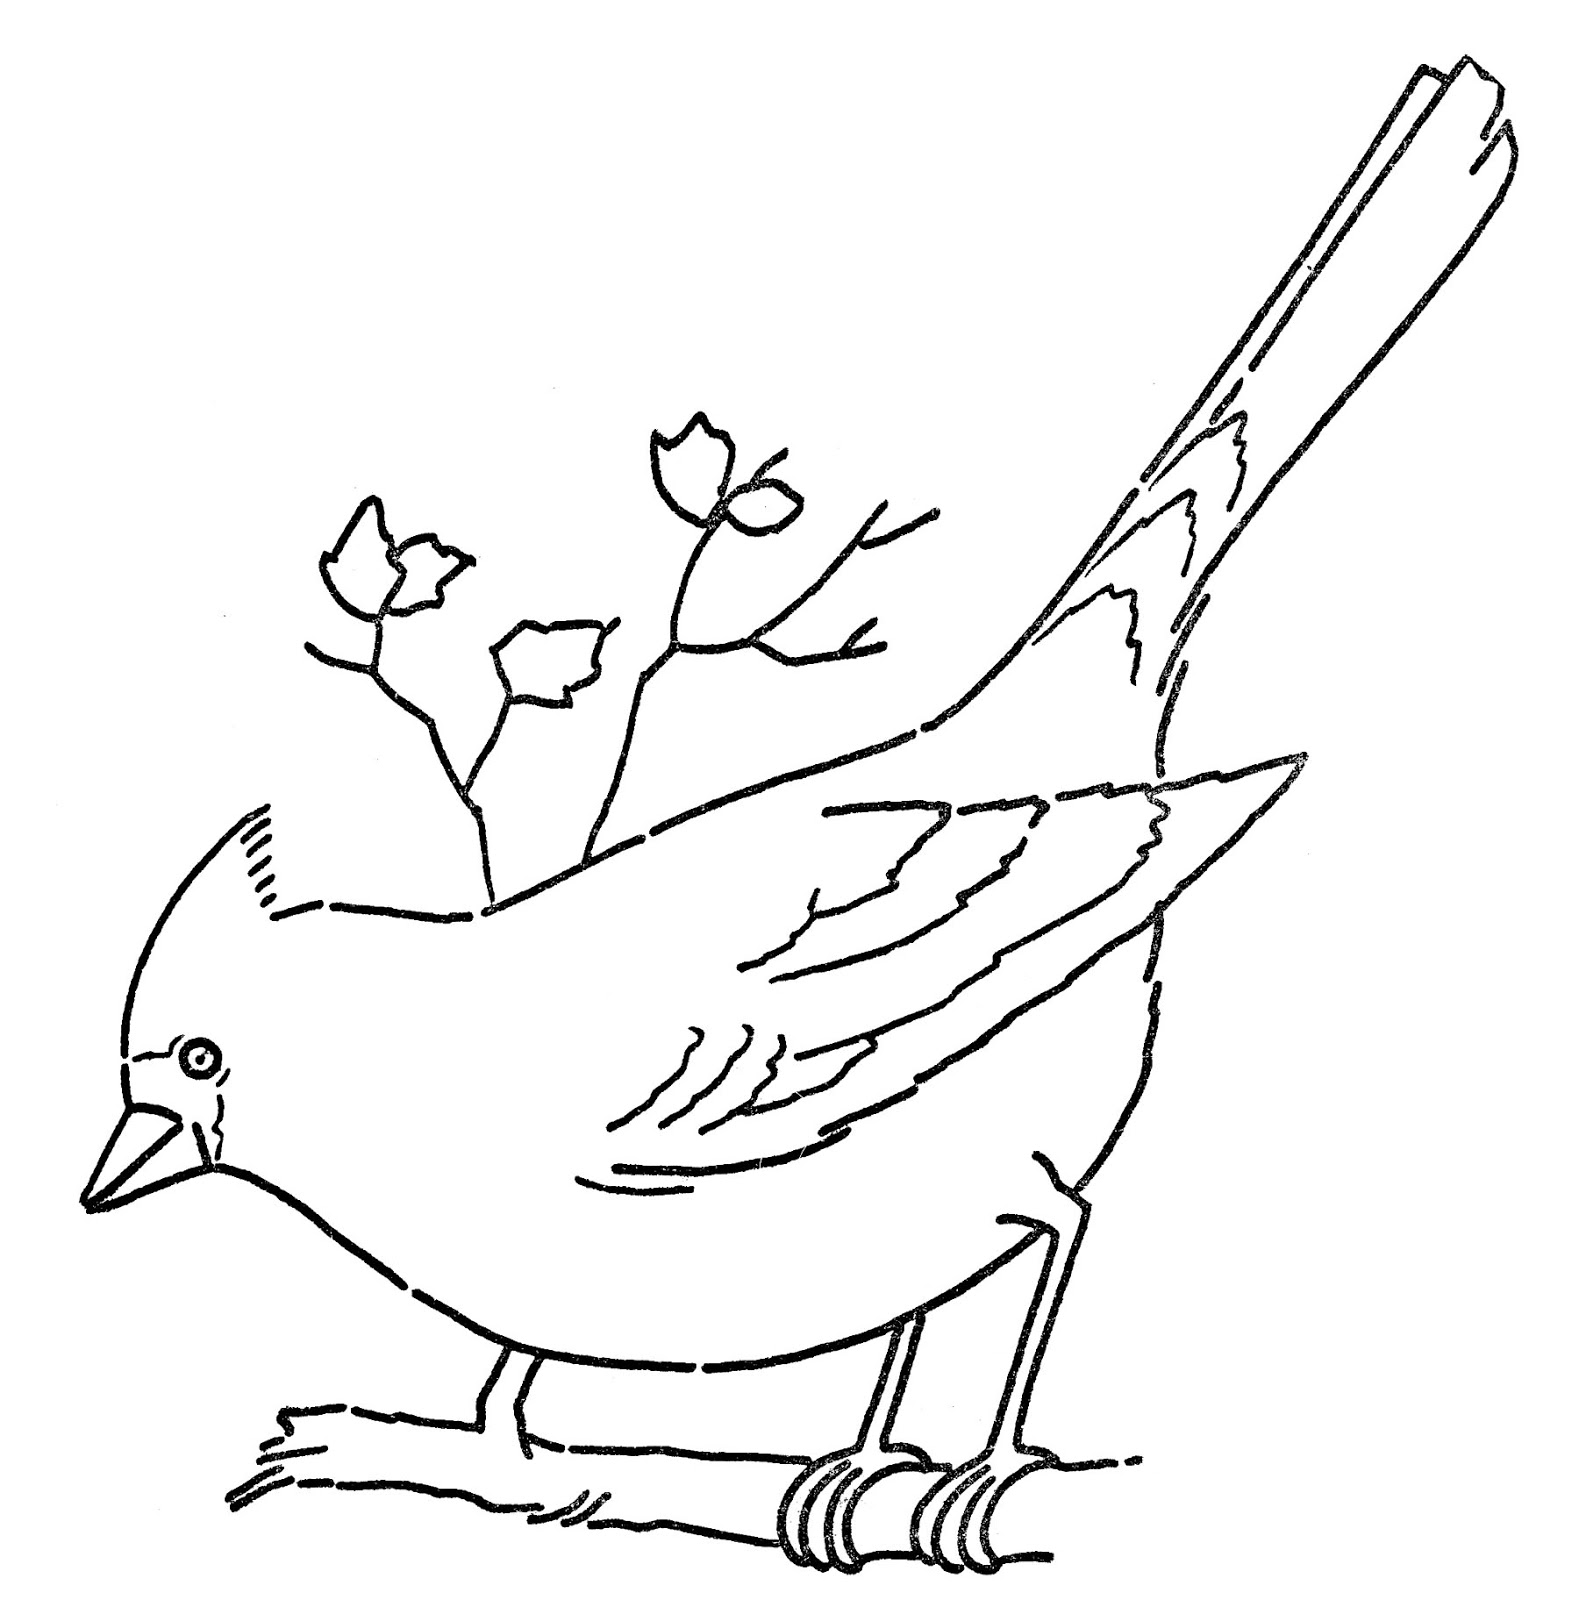 Line Art Graphics : Line art bird cardinal graphicsfairy the graphics fairy